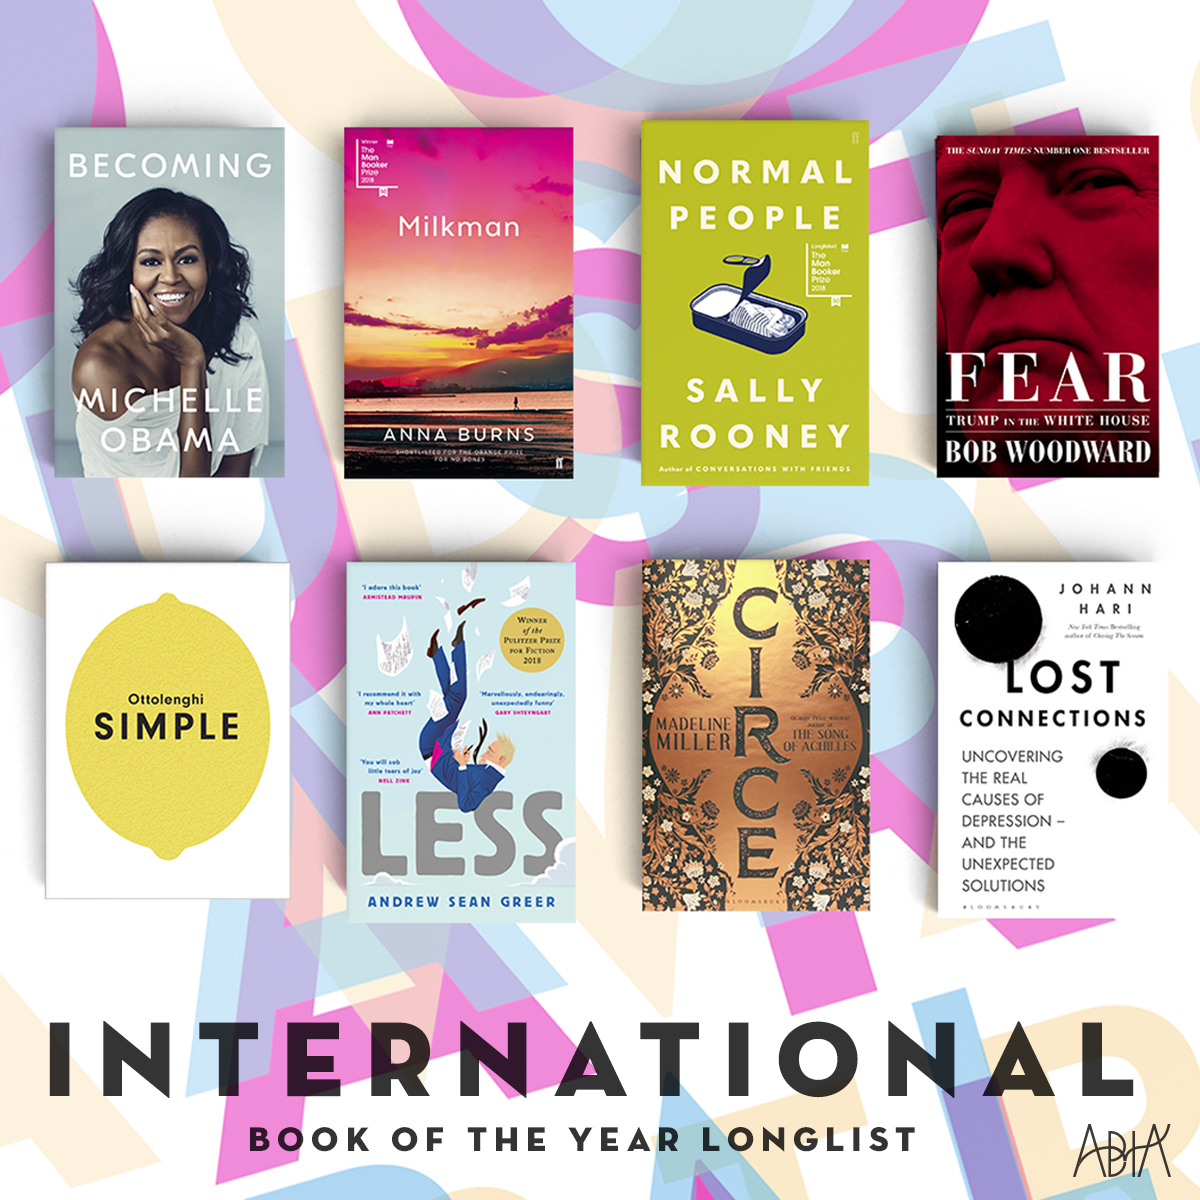 INTERNATIONAL BOOK OF THE YEAR:    Becoming,  Michelle Obama (Penguin Random House Australia, Viking)   CIRCE , Madeline Miller (Bloomsbury Publishing, Bloomsbury)   Fear: Trump in the White House , Bob Woodward (Simon & Schuster UK, Simon & Schuster UK)   Less , Andrew Sean Greer (Hachette Australia Pty Ltd, Abacus)   Lost Connections,  Johann Hari (Bloomsbury Publishing, Bloomsbury Circus)   Milkman , Anna Burns (Faber & Faber, Faber & Faber)   Normal People , Sally Rooney (Faber & Faber, Faber & Faber)   Ottolenghi SIMPLE , Yotam Ottolenghi (Penguin Random House Australia, Ebury Press)